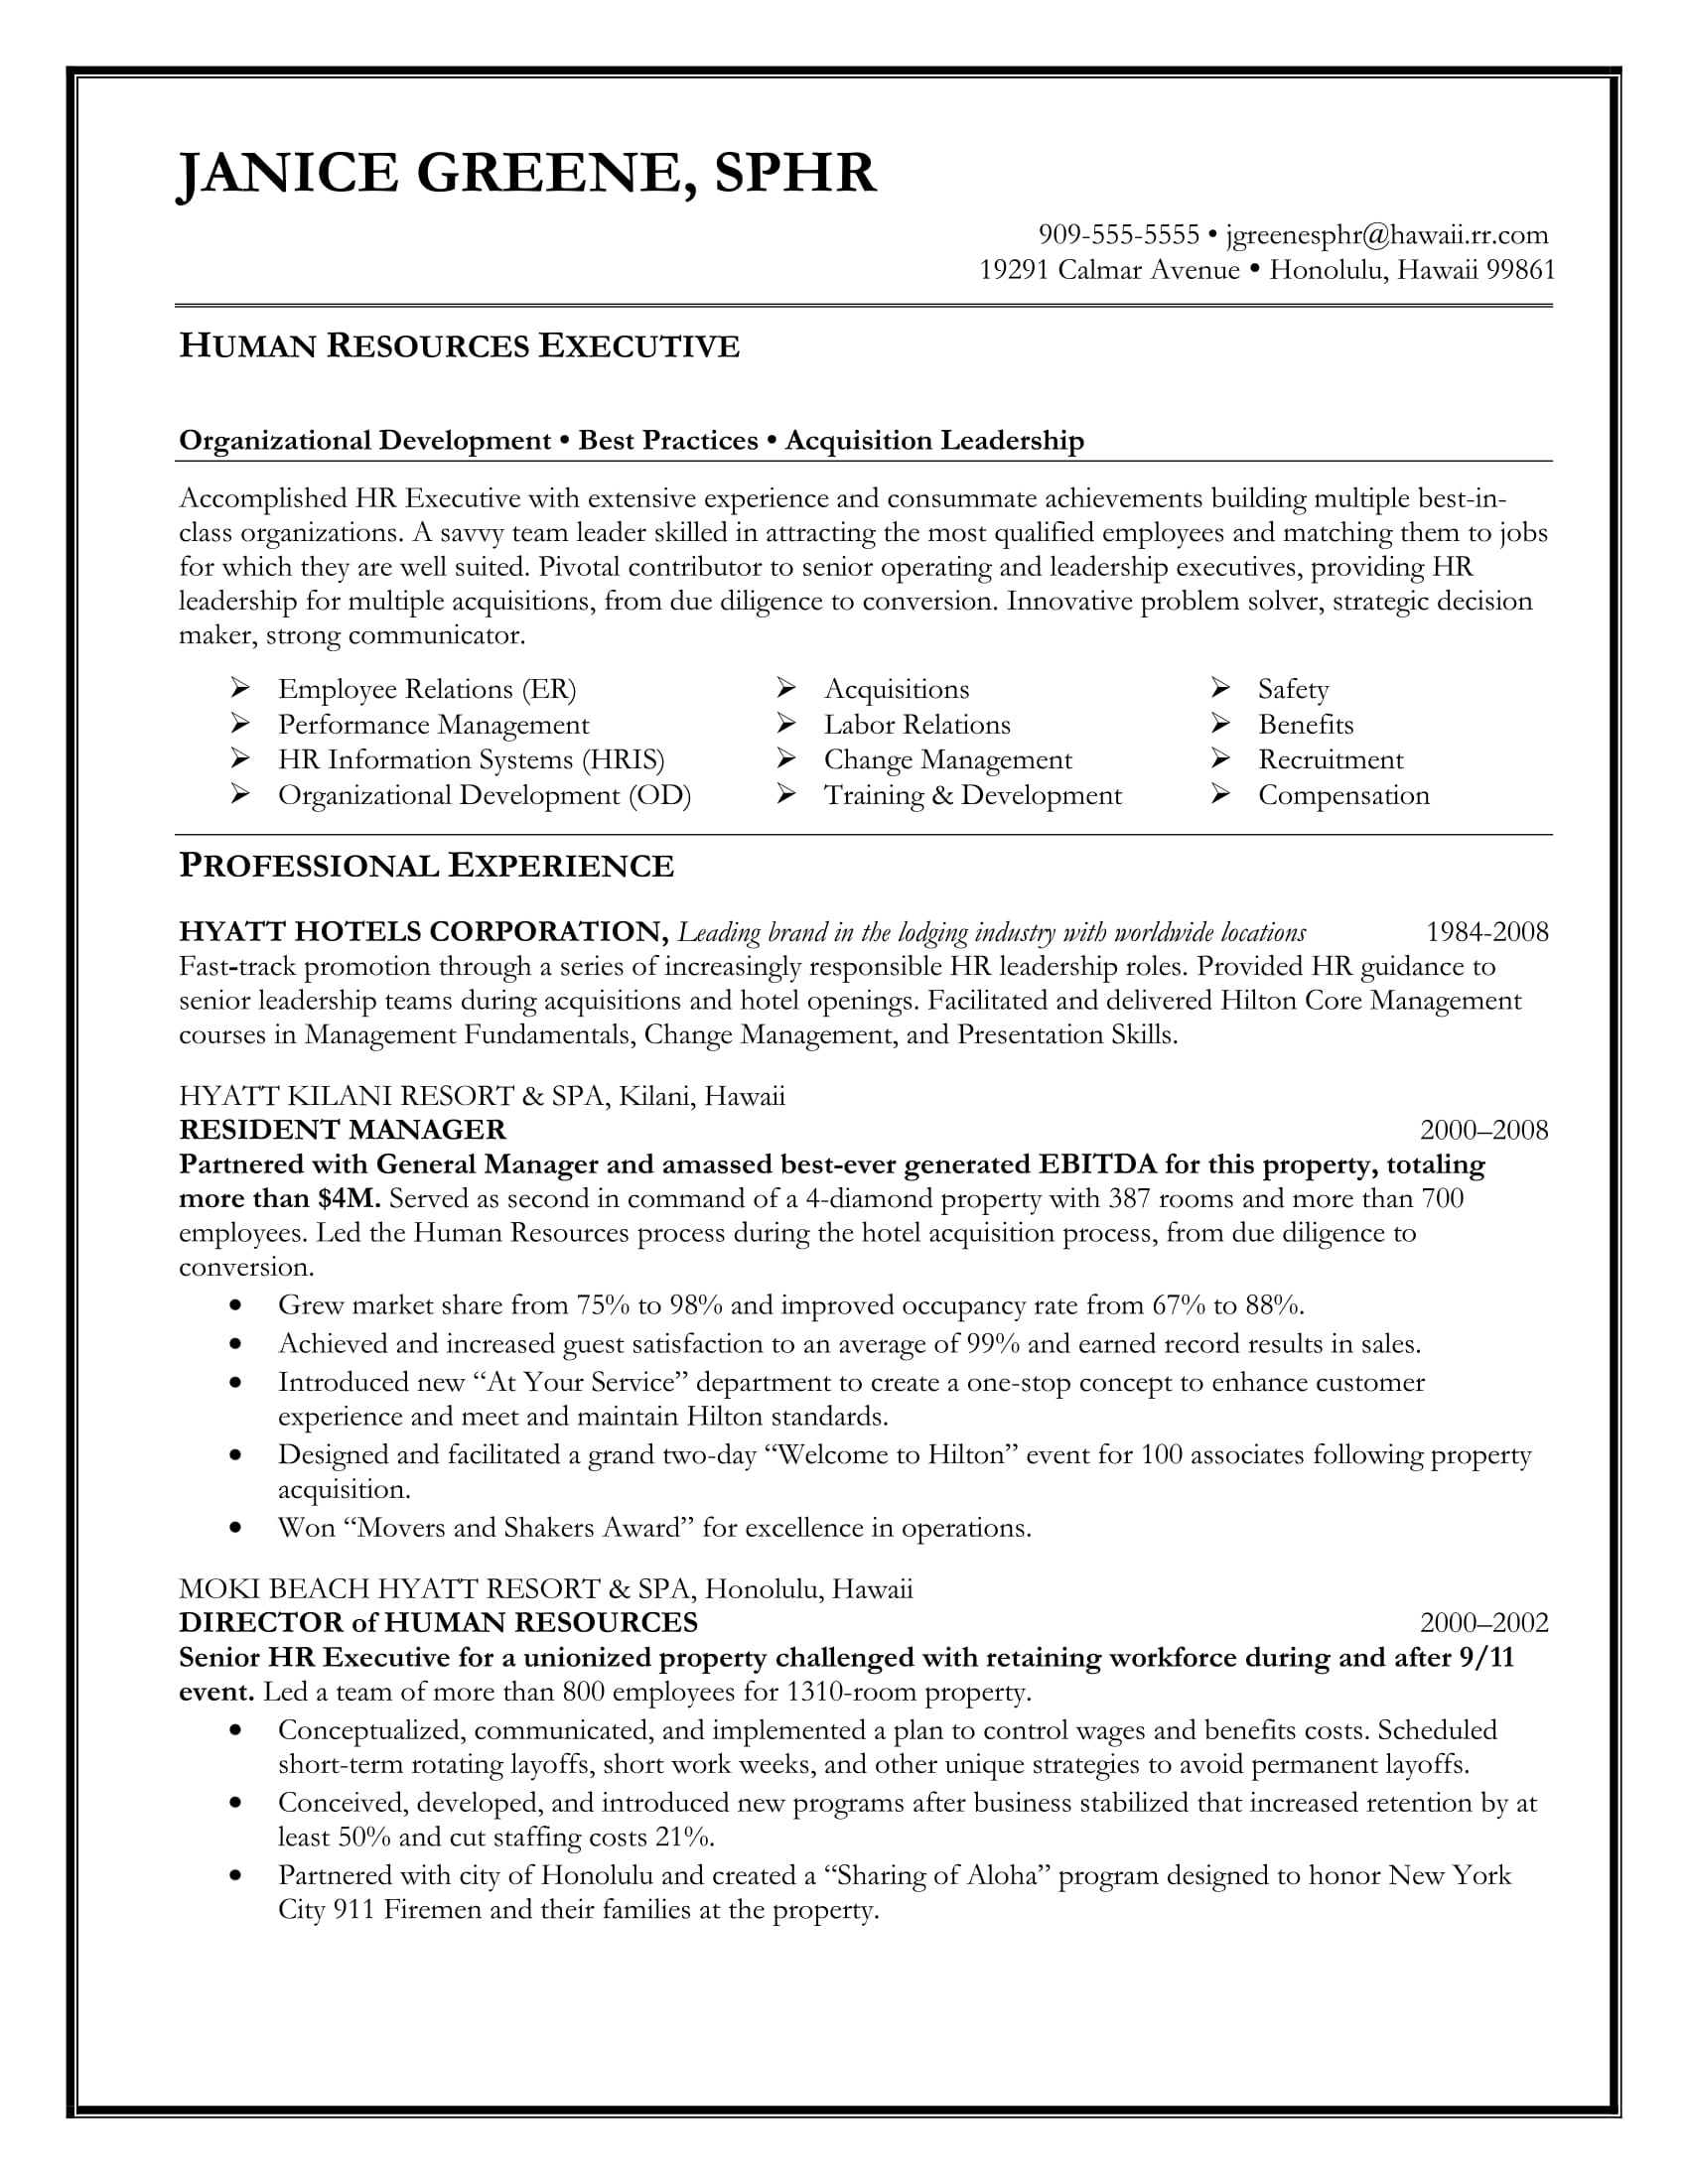 best sample executive resume templates wisestep management free template simple builder Resume Management Resume Templates Free